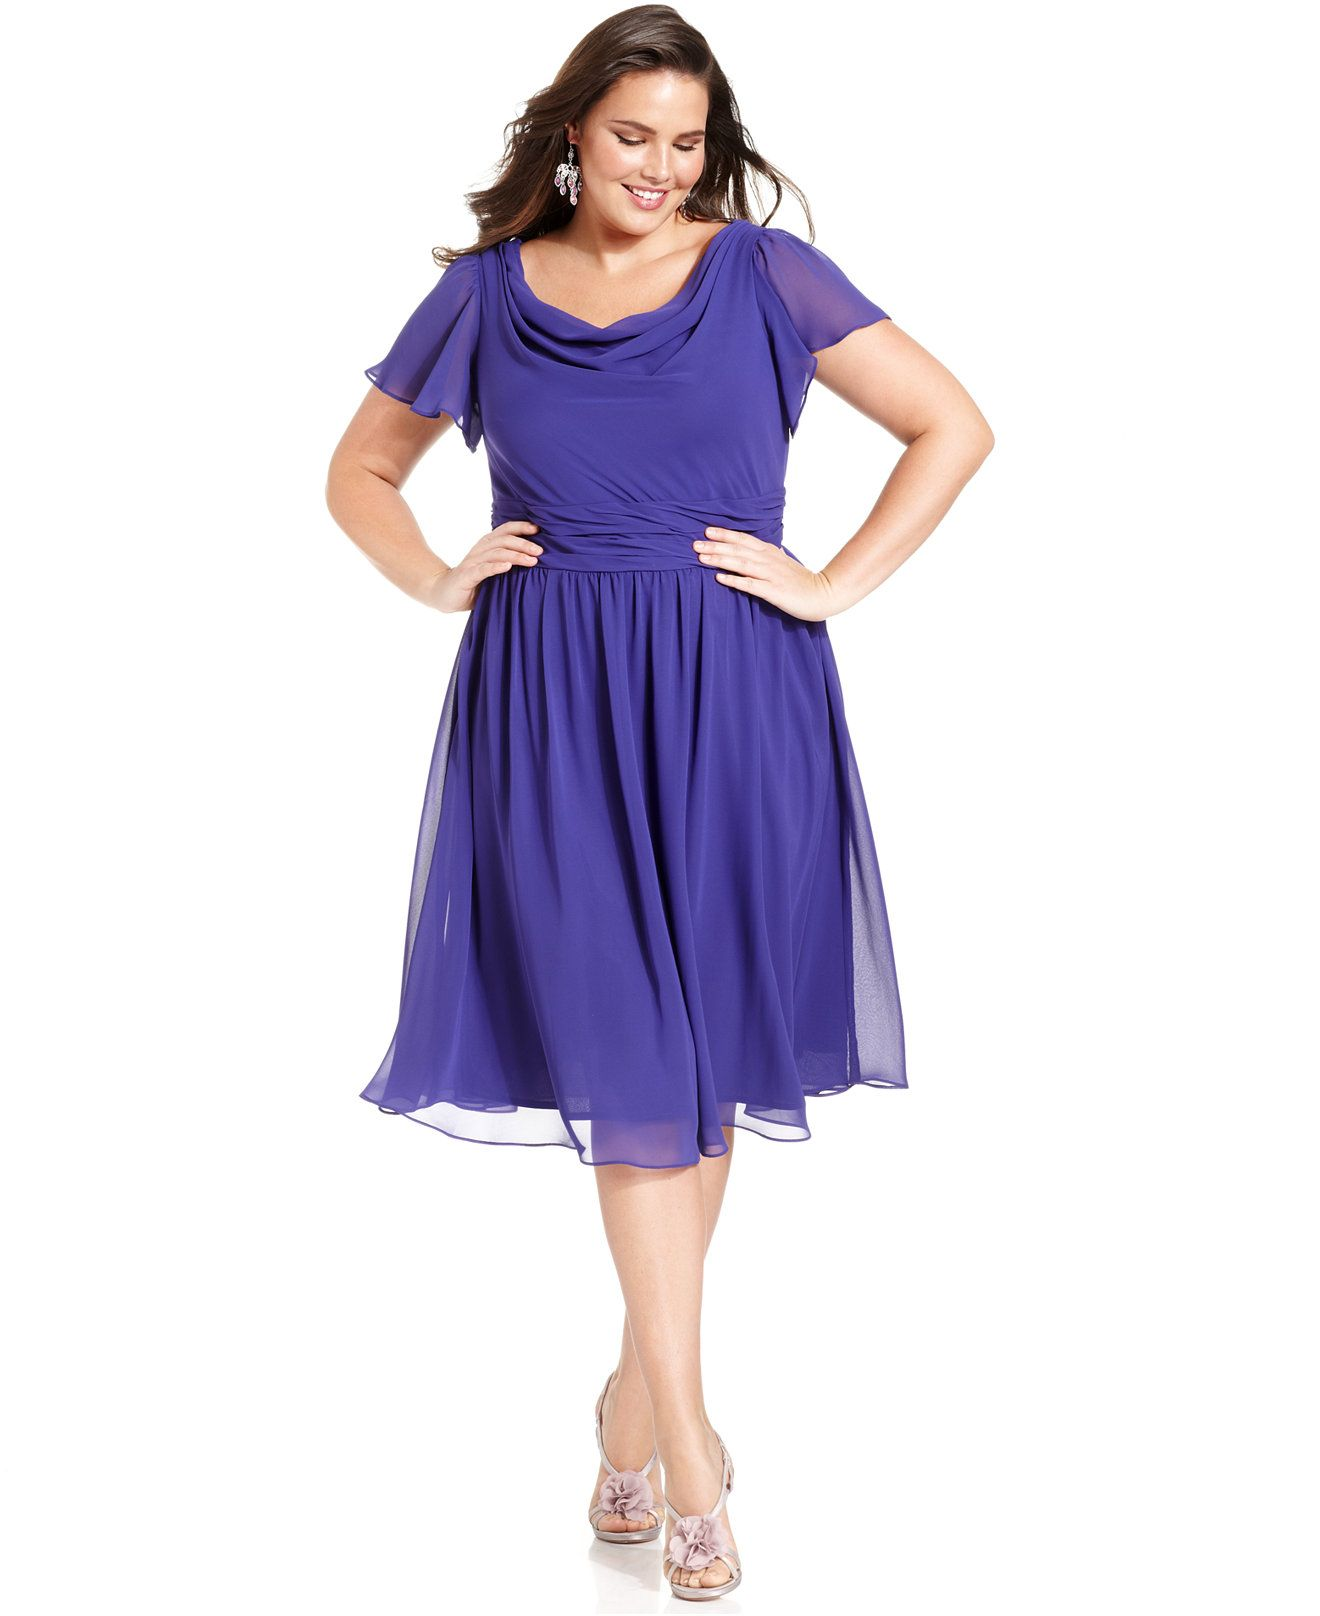 SL Fashions Plus Size Short-Sleeve Cowl-Neck Dress - Dresses - Women ...